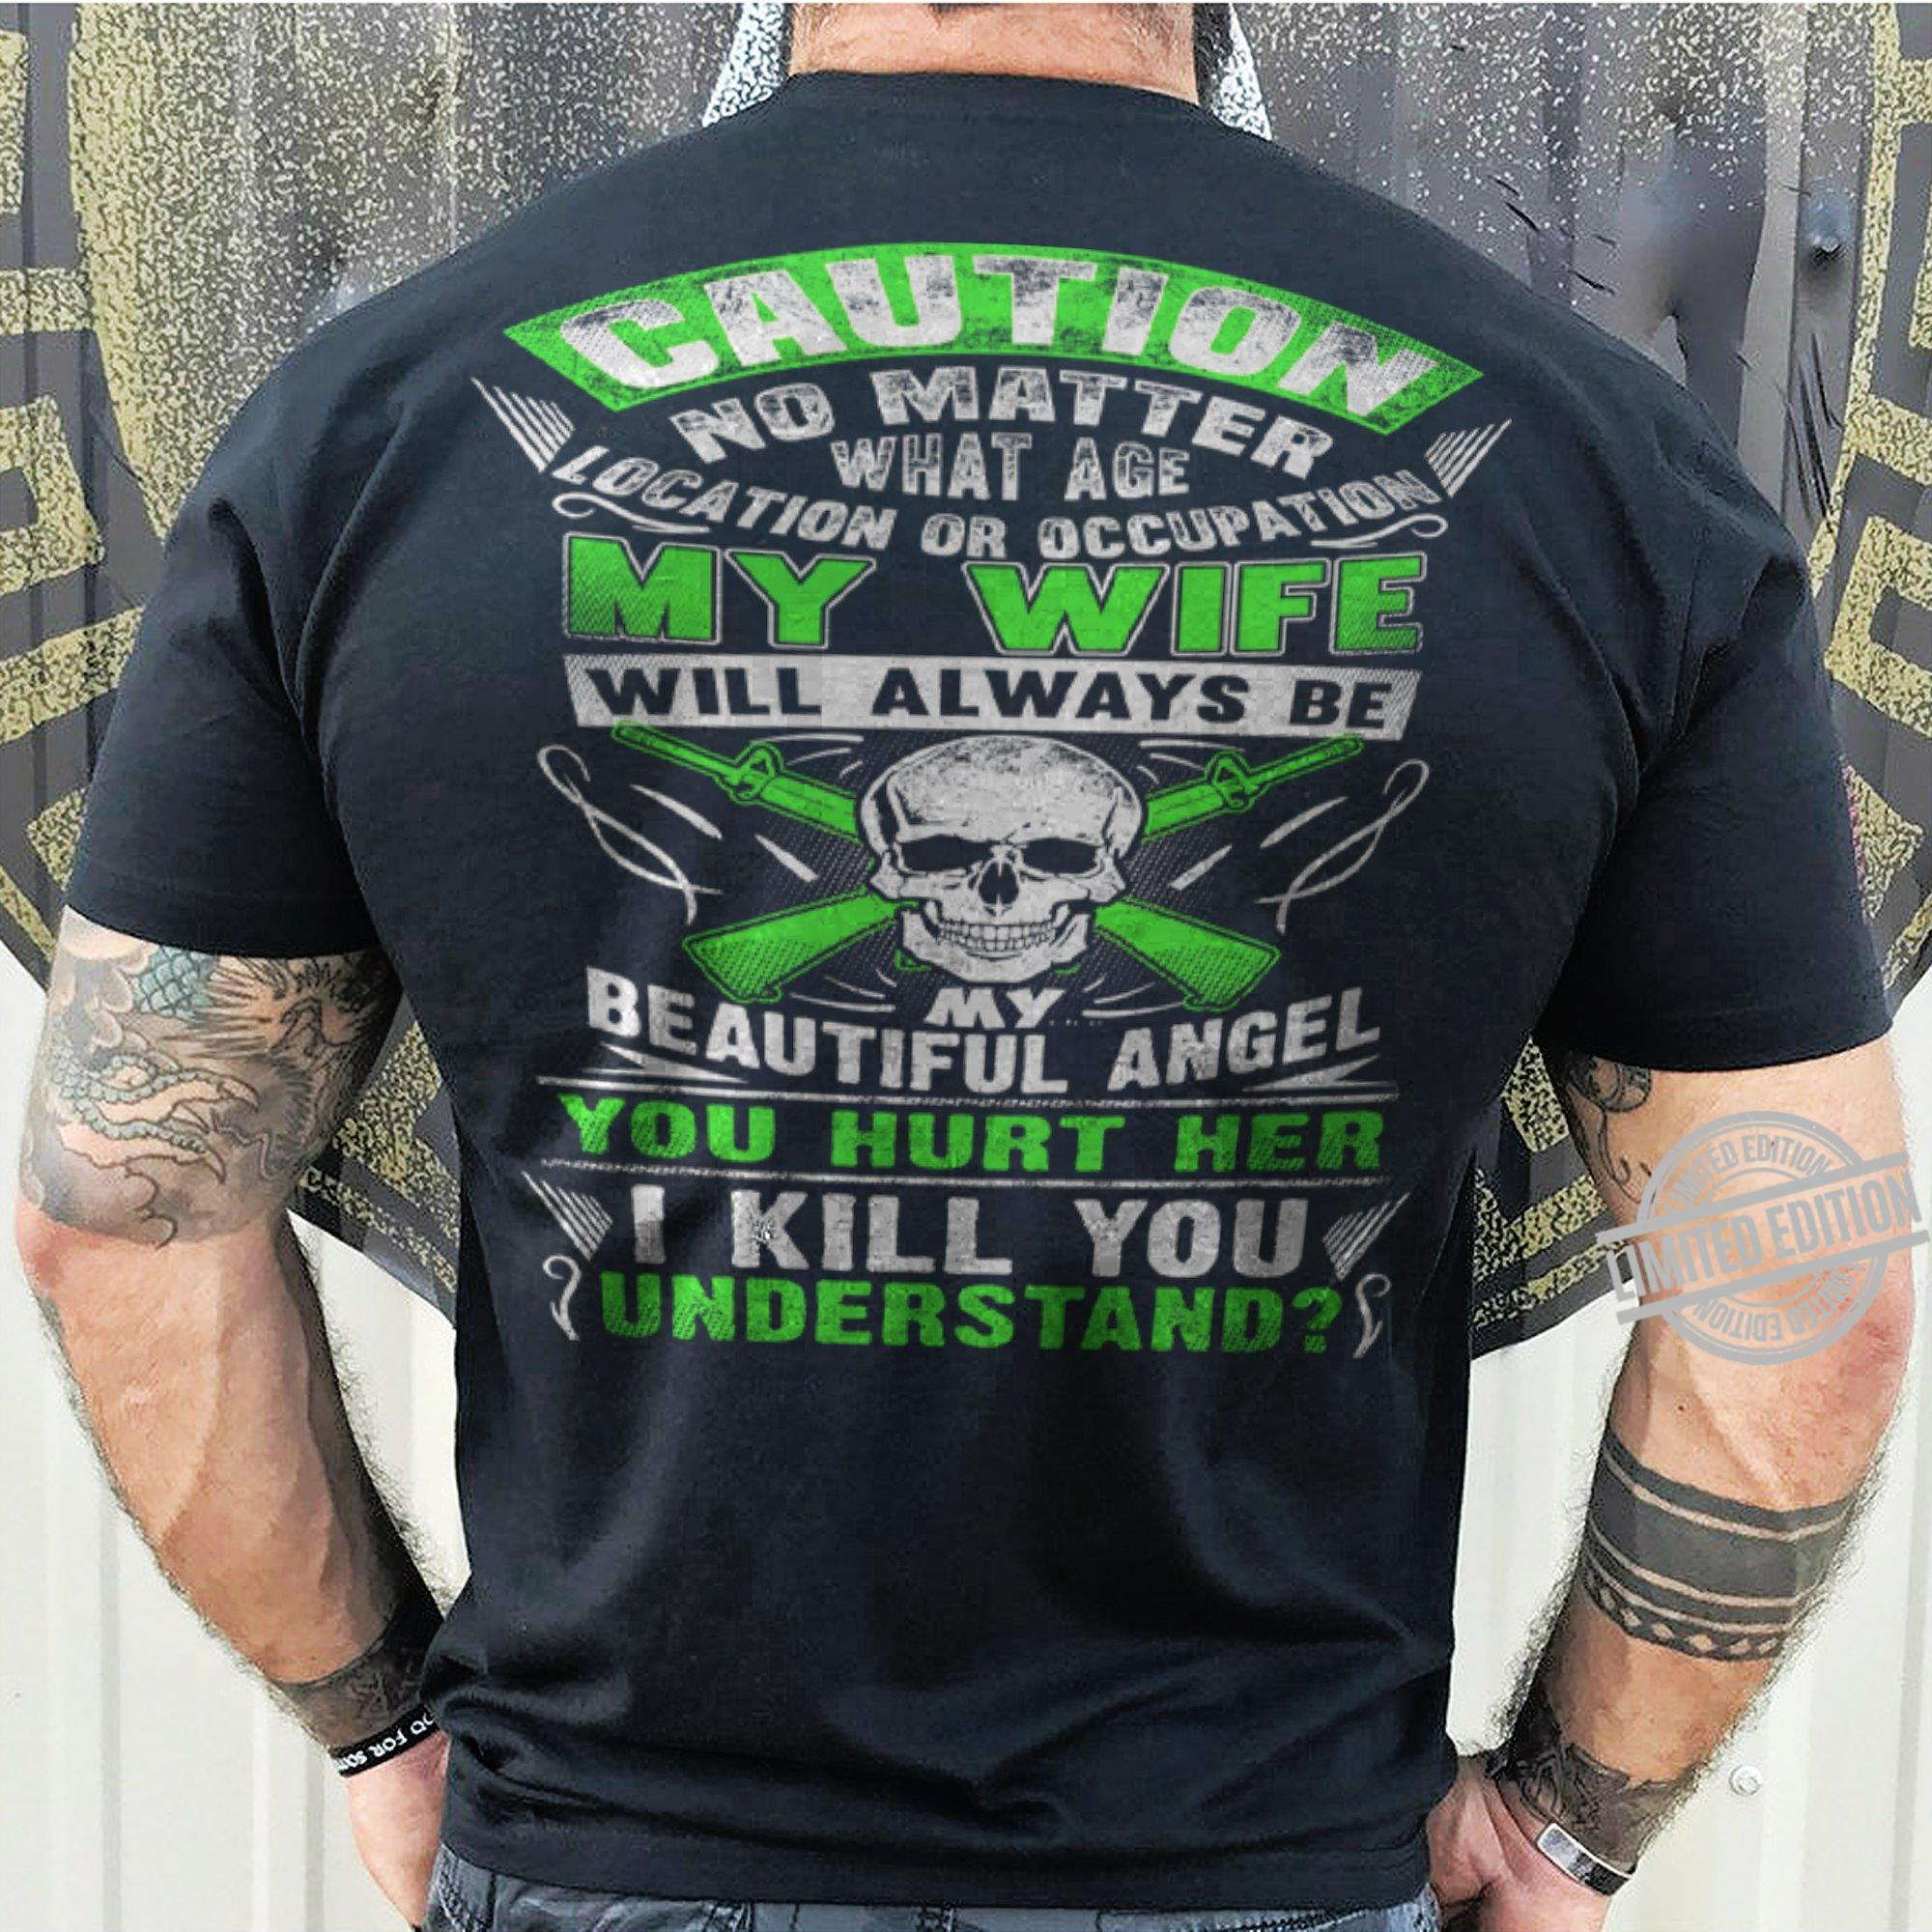 Caution No matter What Age Location Or Occupation My Wife Will ALways Be My Beautiful Angel You Hurt Her I Kill You Understand Shirt